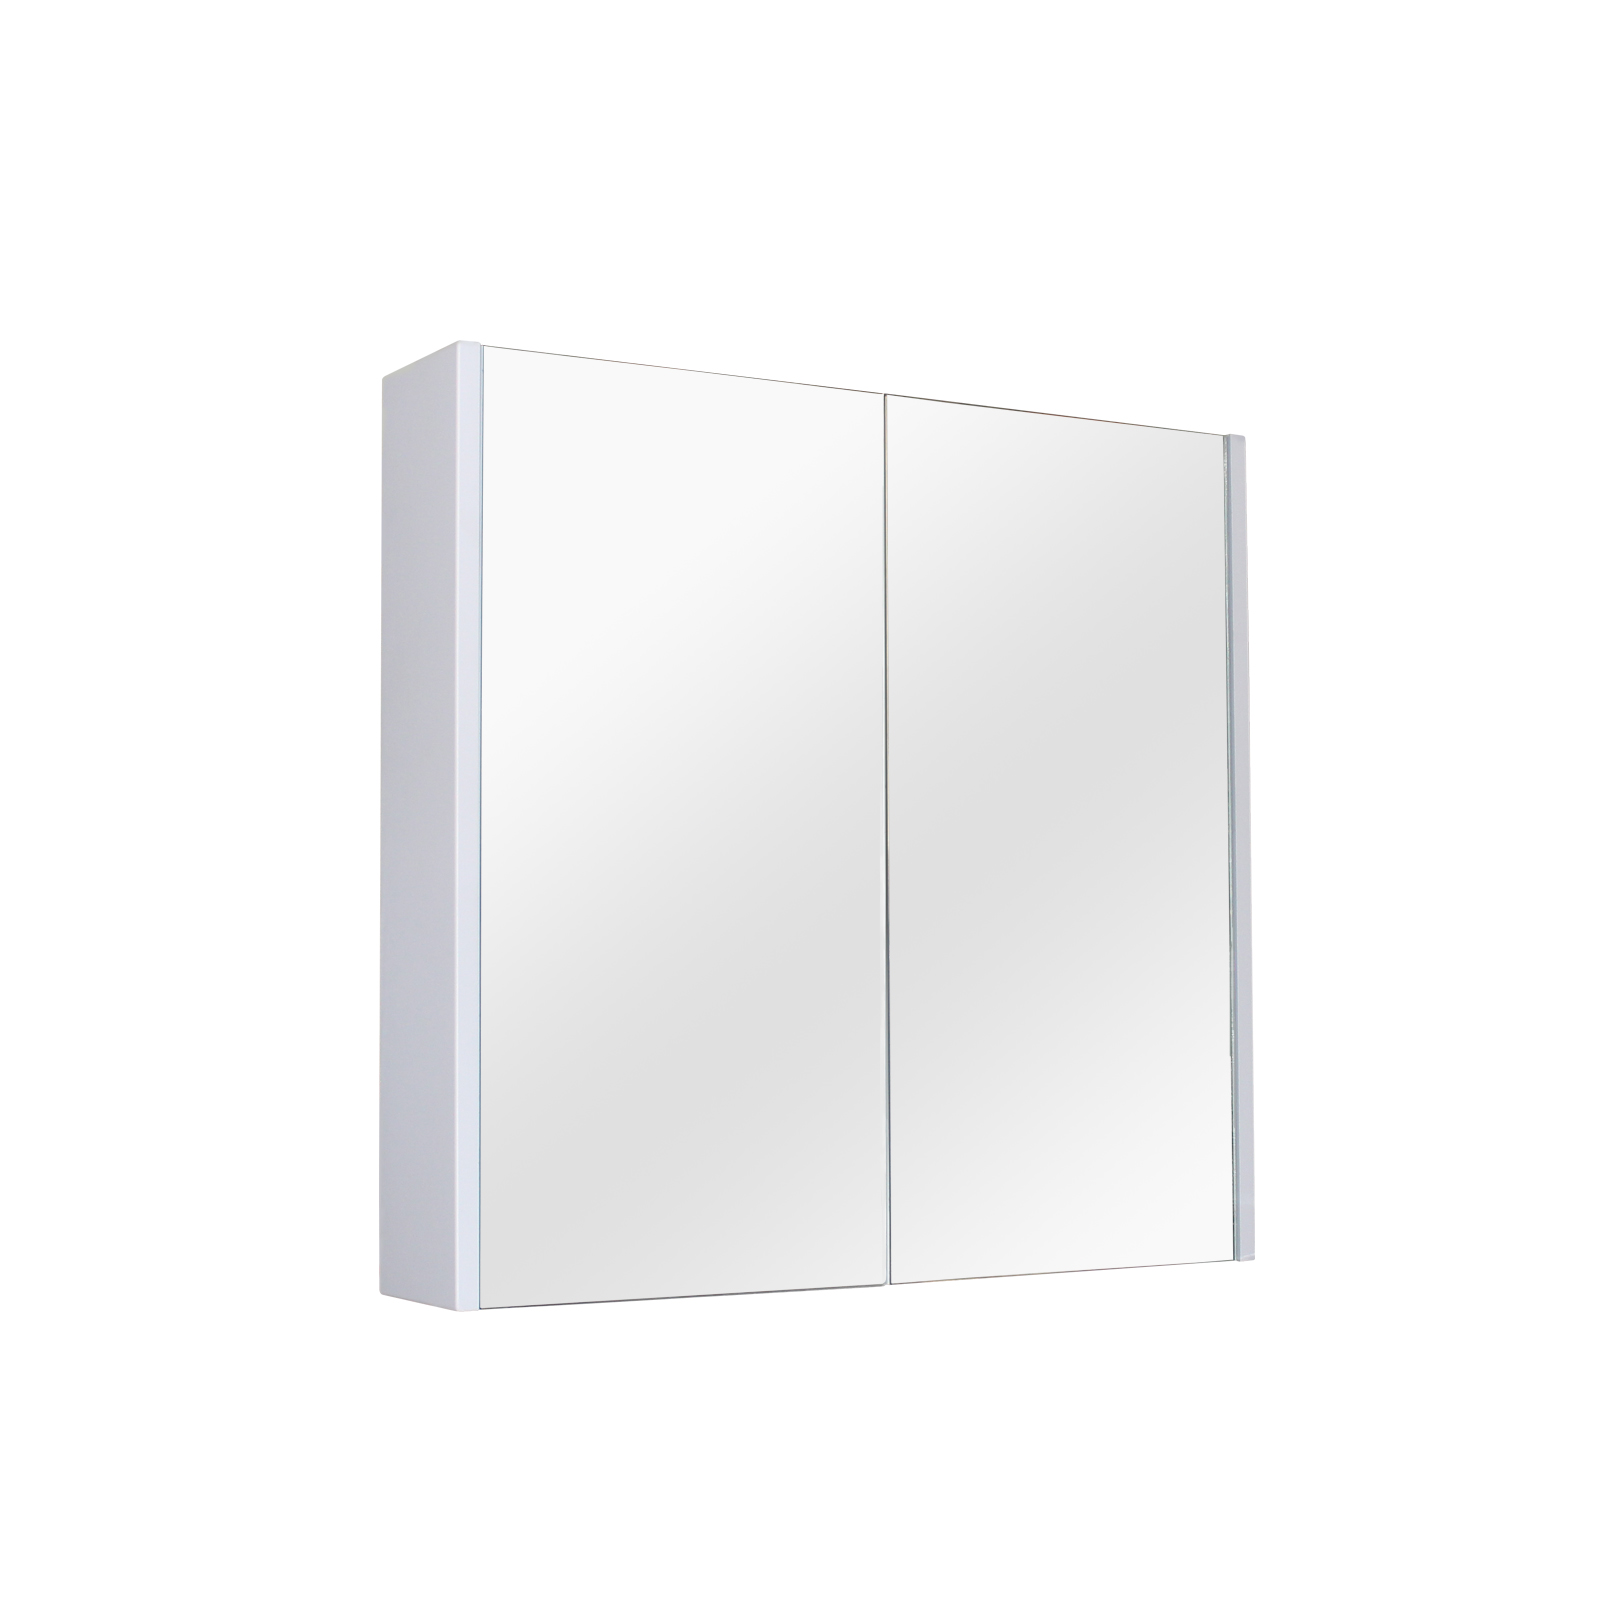 Paris 600 Shaving Cabinet - Matt White